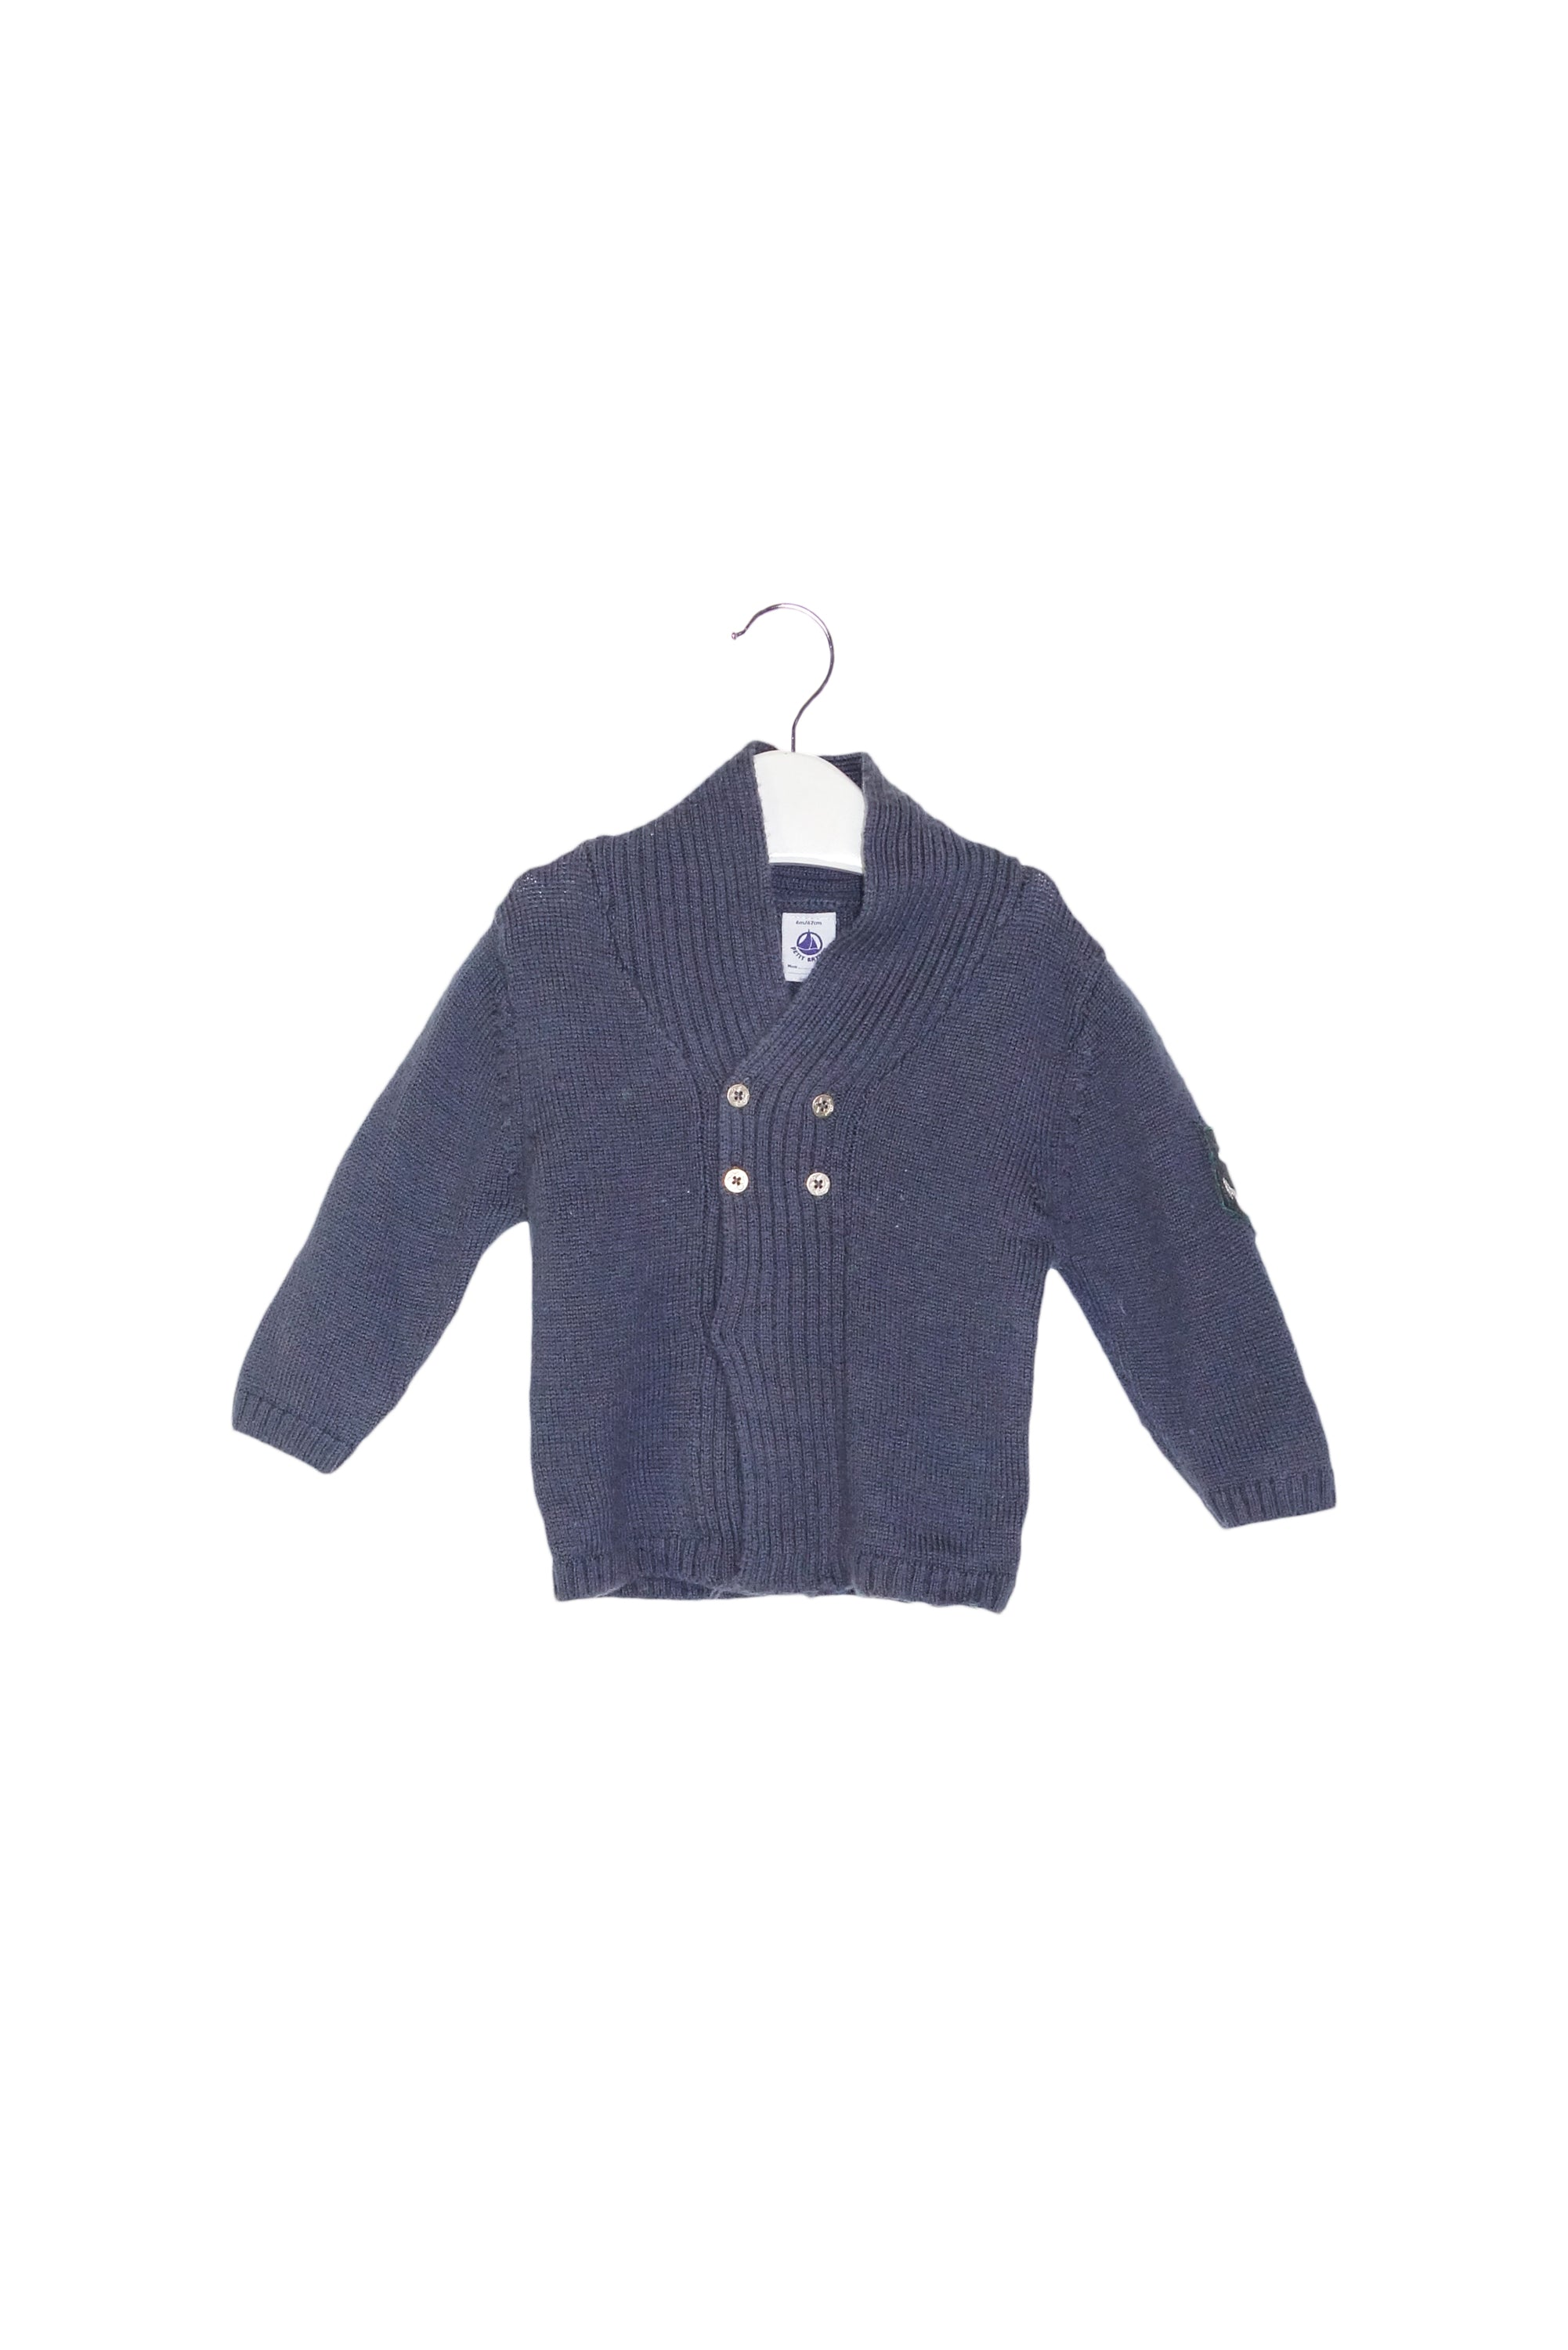 10012917 Petit Bateau Baby ~ Sweater 6M at Retykle